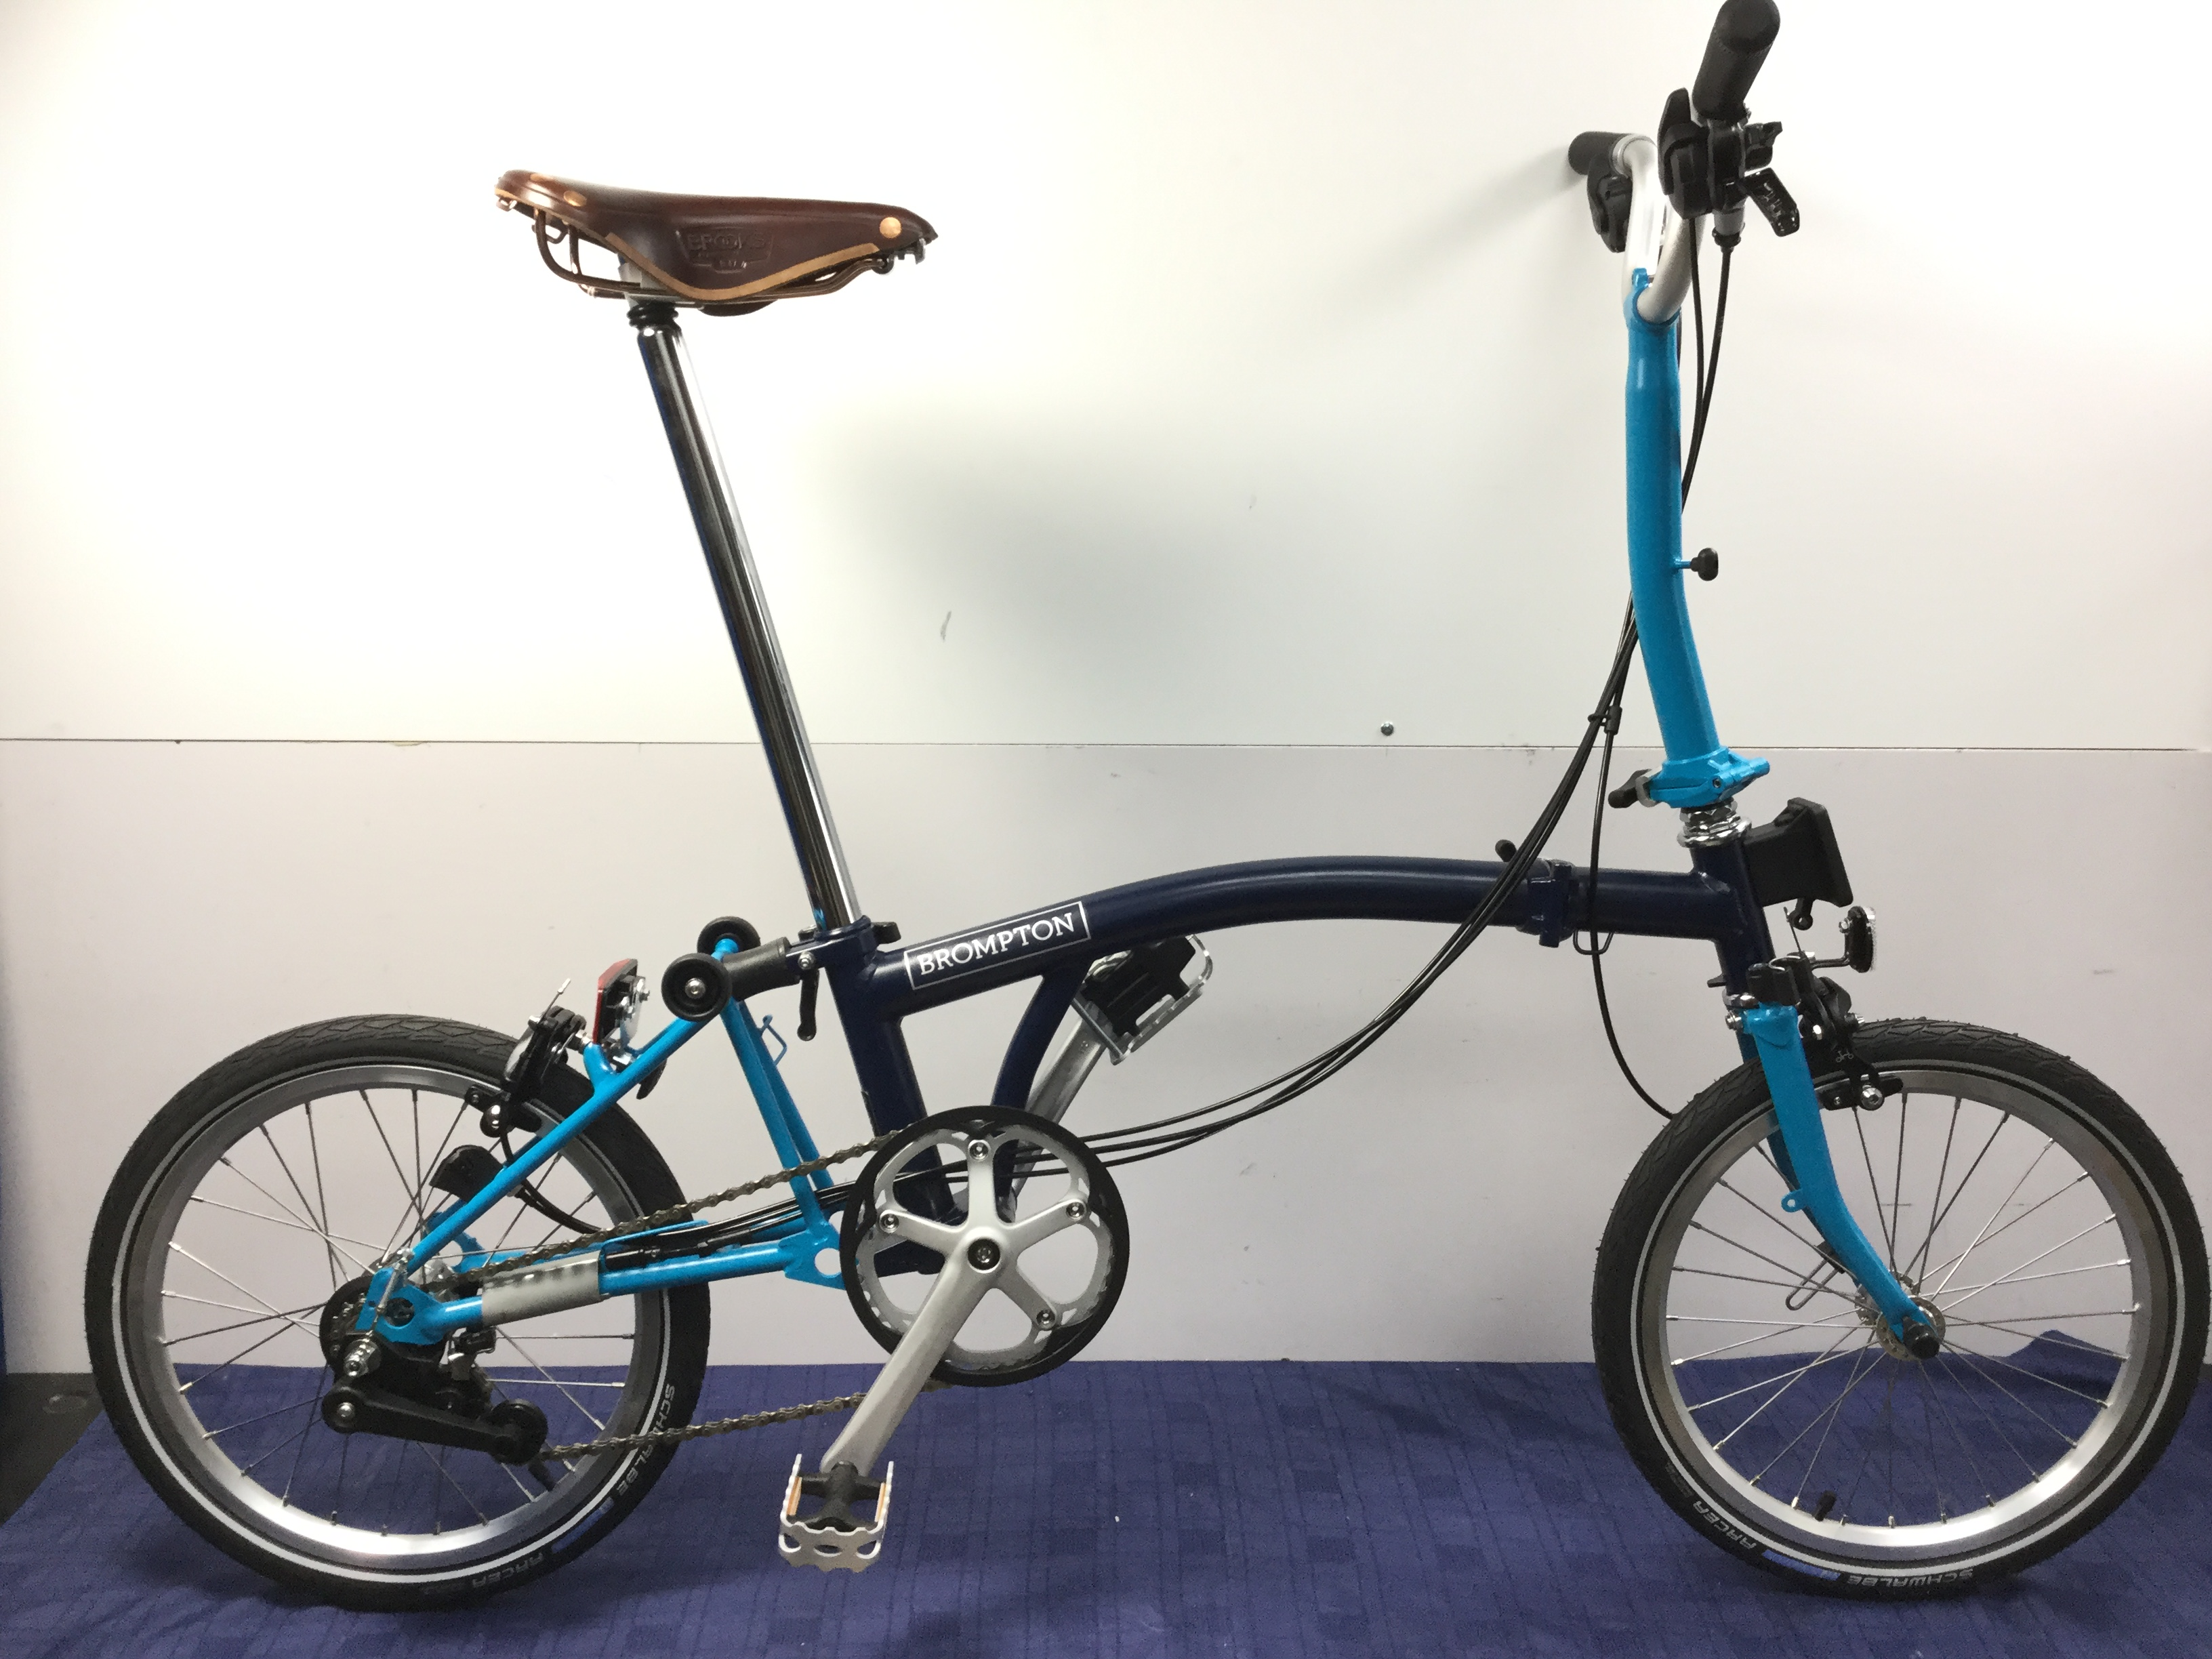 Brompton Bikes Brompton Folding Bicycle M6e Tempest Blue Lagoon Blue